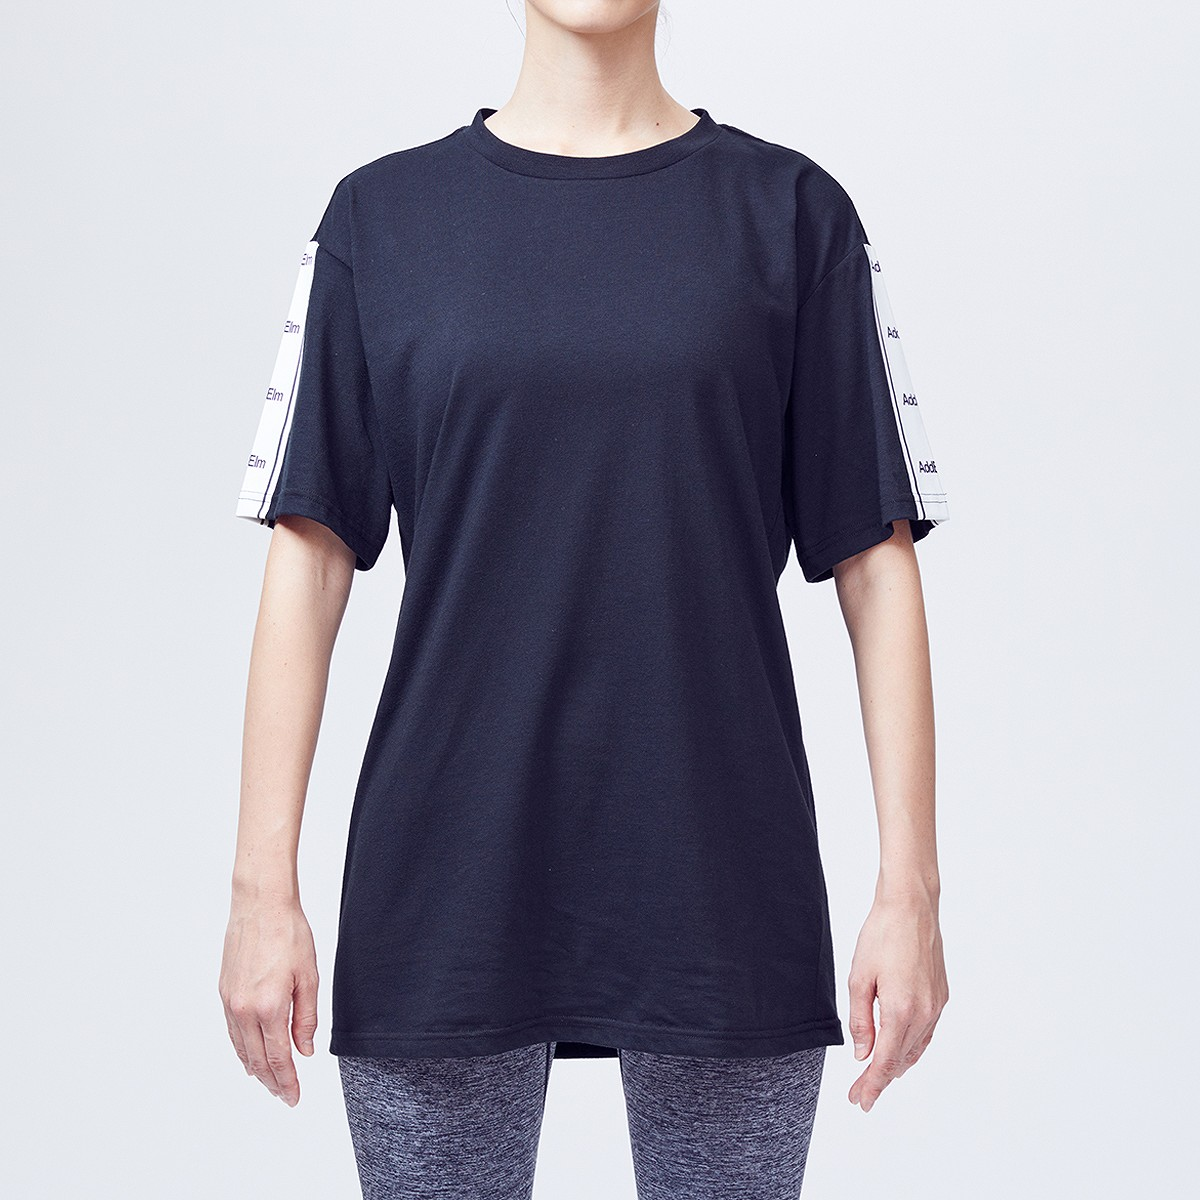 【add.03】LINE  SLEEVE TEE ユニセックス